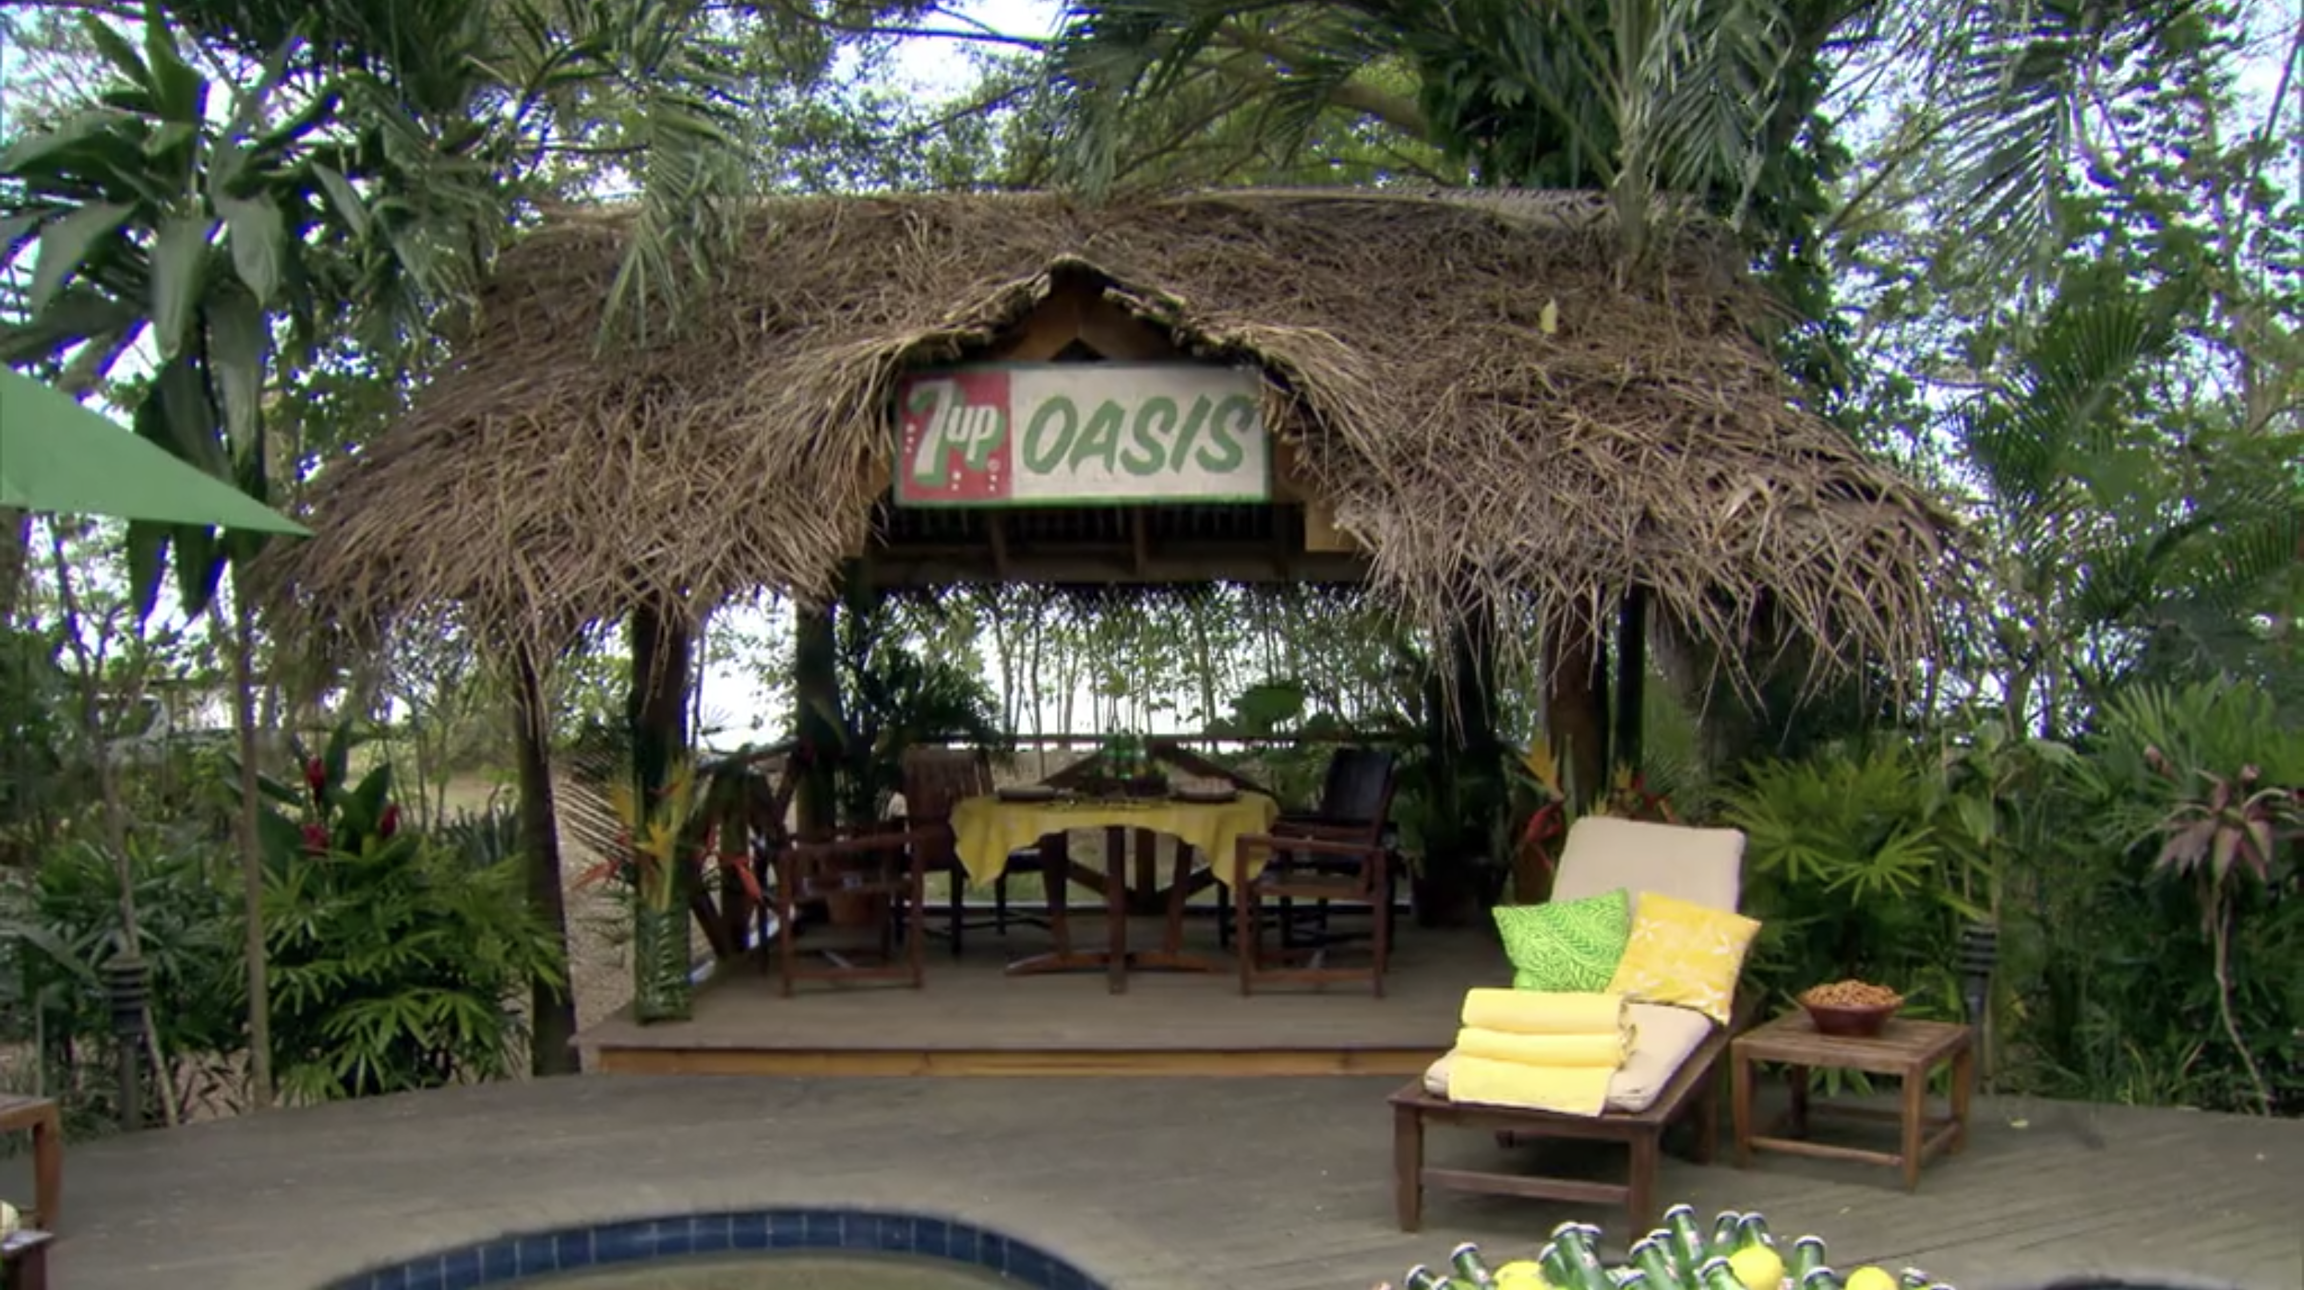 The 7UP Oasis